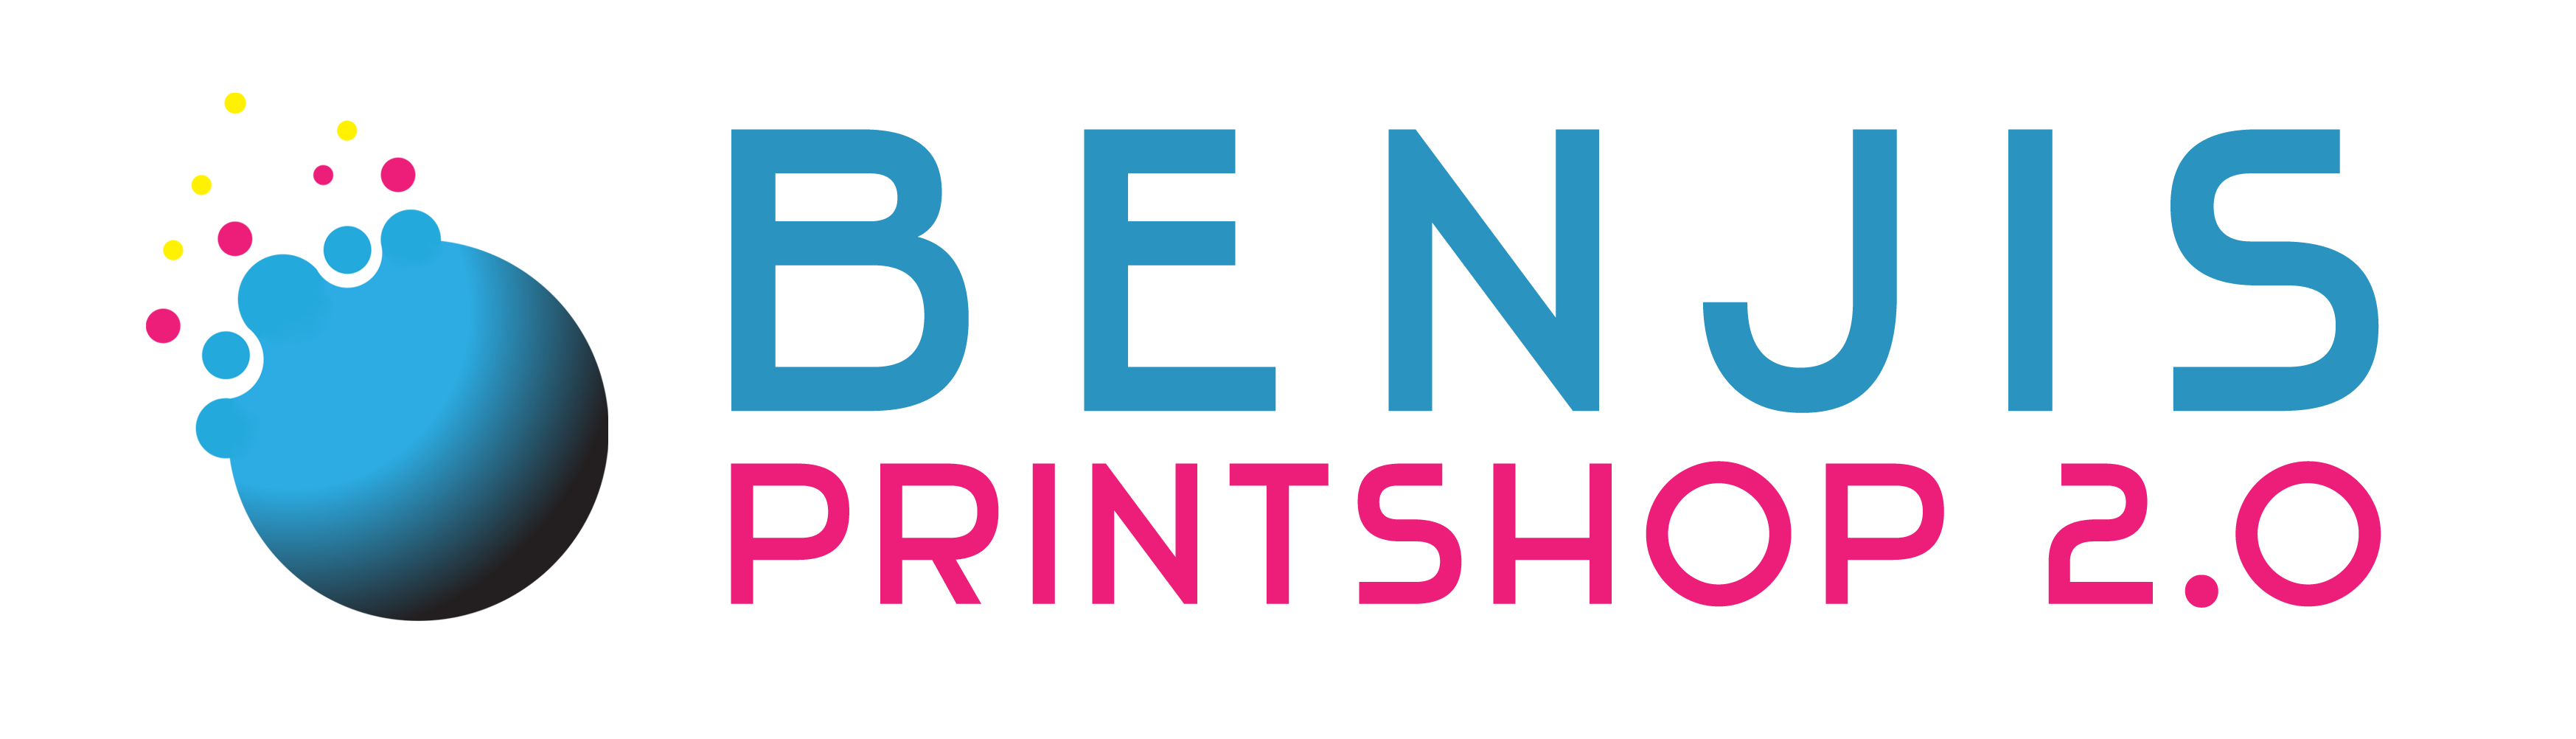 Benjis Print - Tri-Cities Printing Design Services